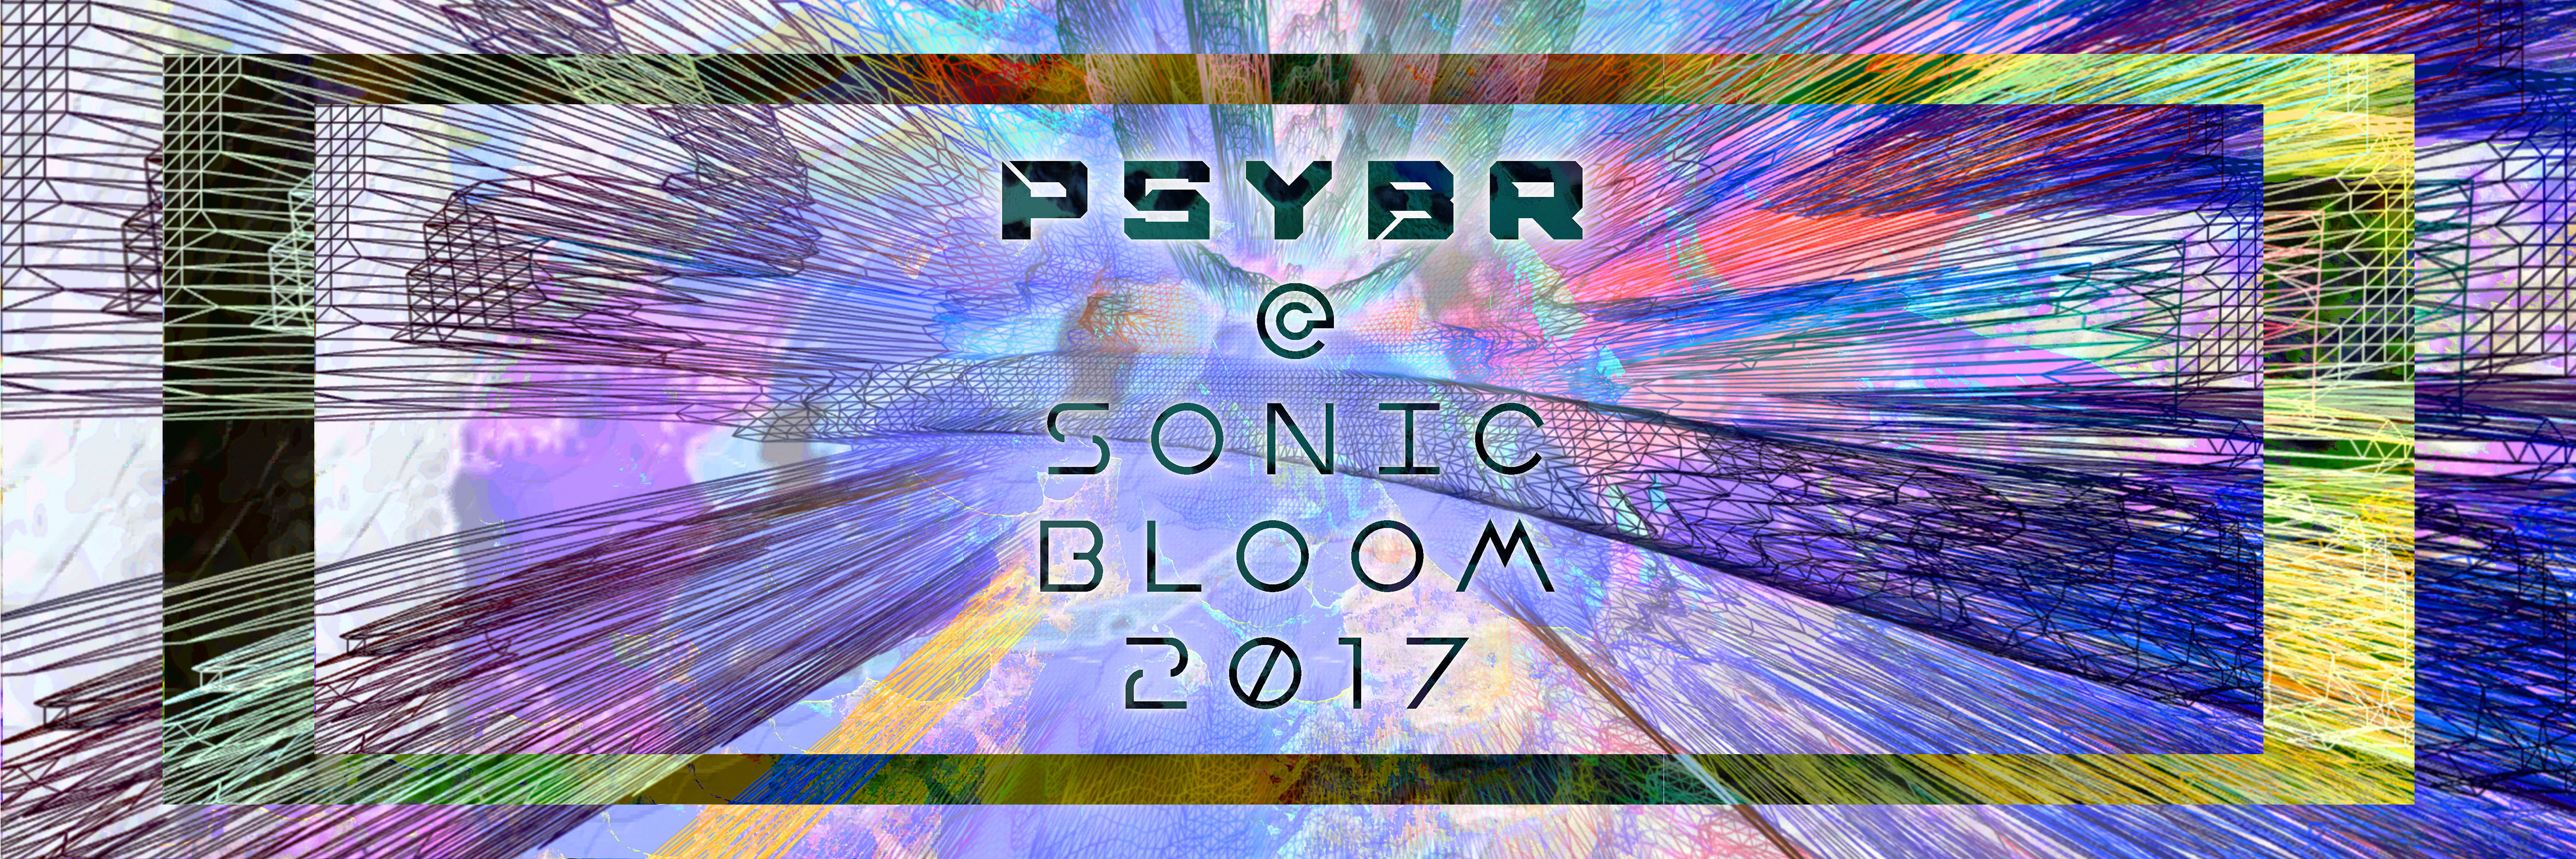 psybr bloom shrunk